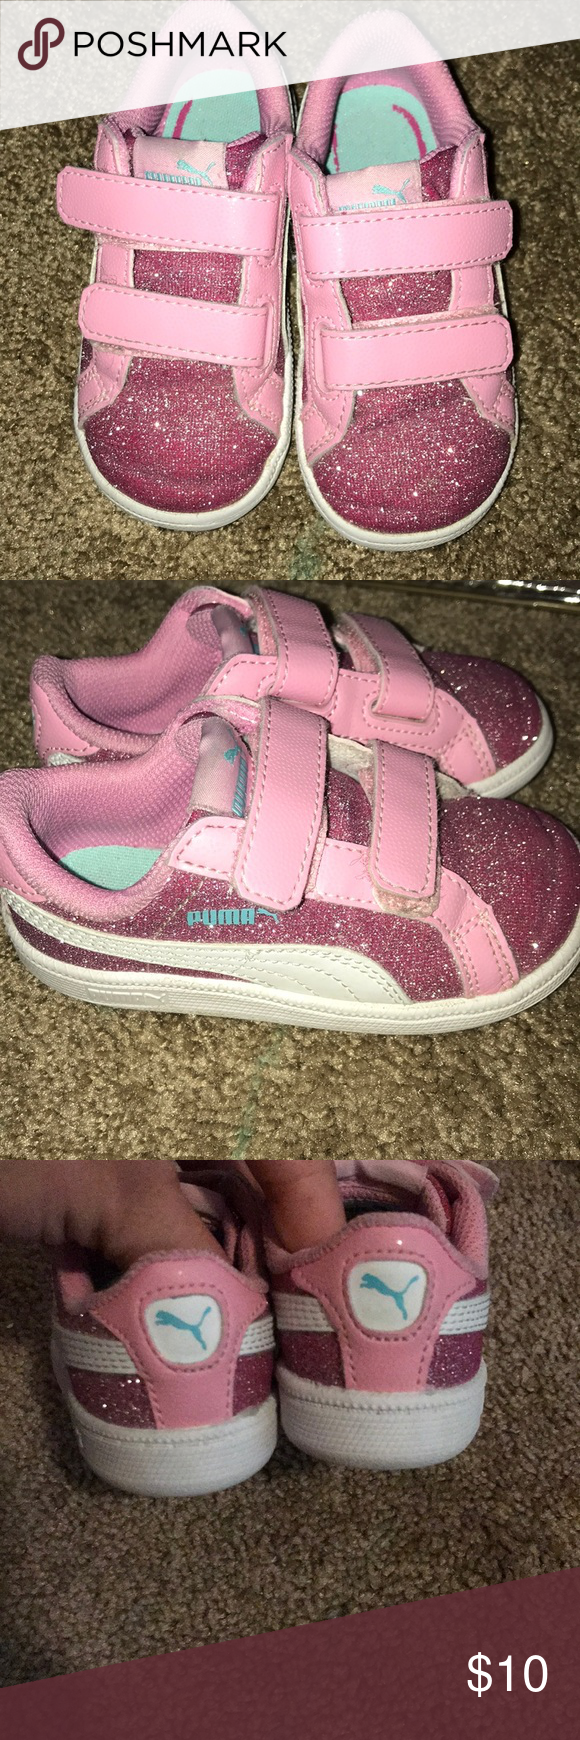 9dec87580c73 Toddler pink glitter pumas Toddler sneakers. Puma glitter pink and light  blue Puma Shoes Sneakers